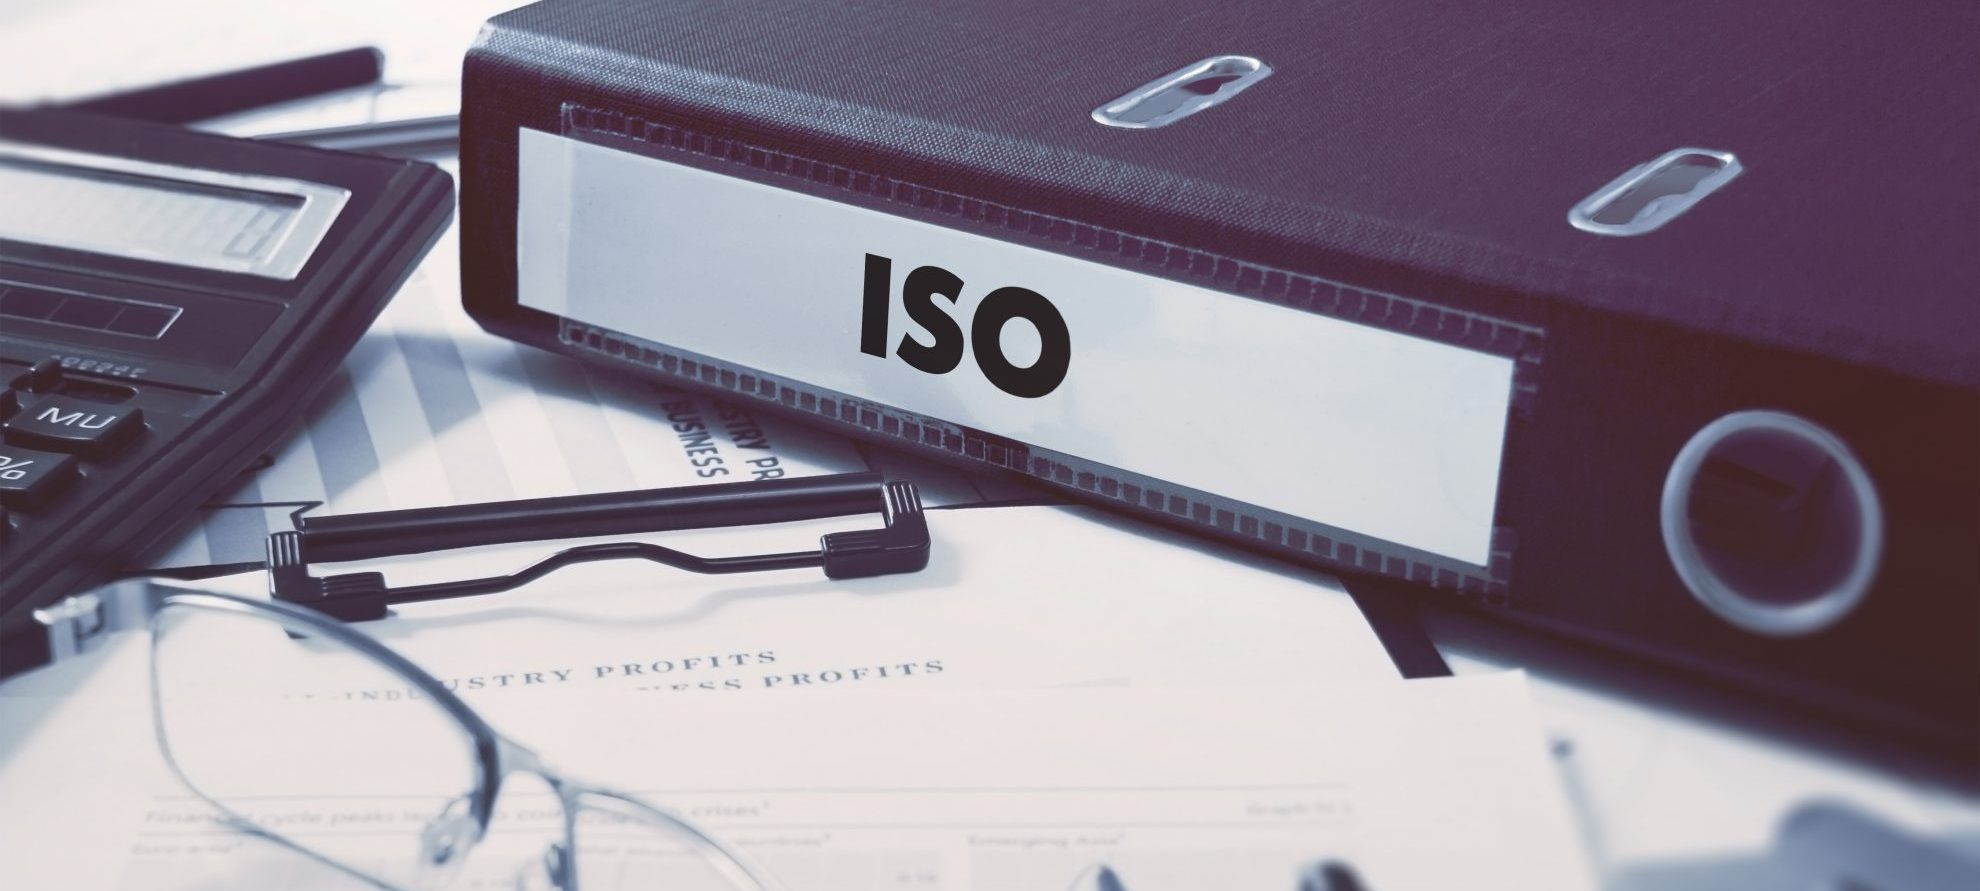 18001 iso certification